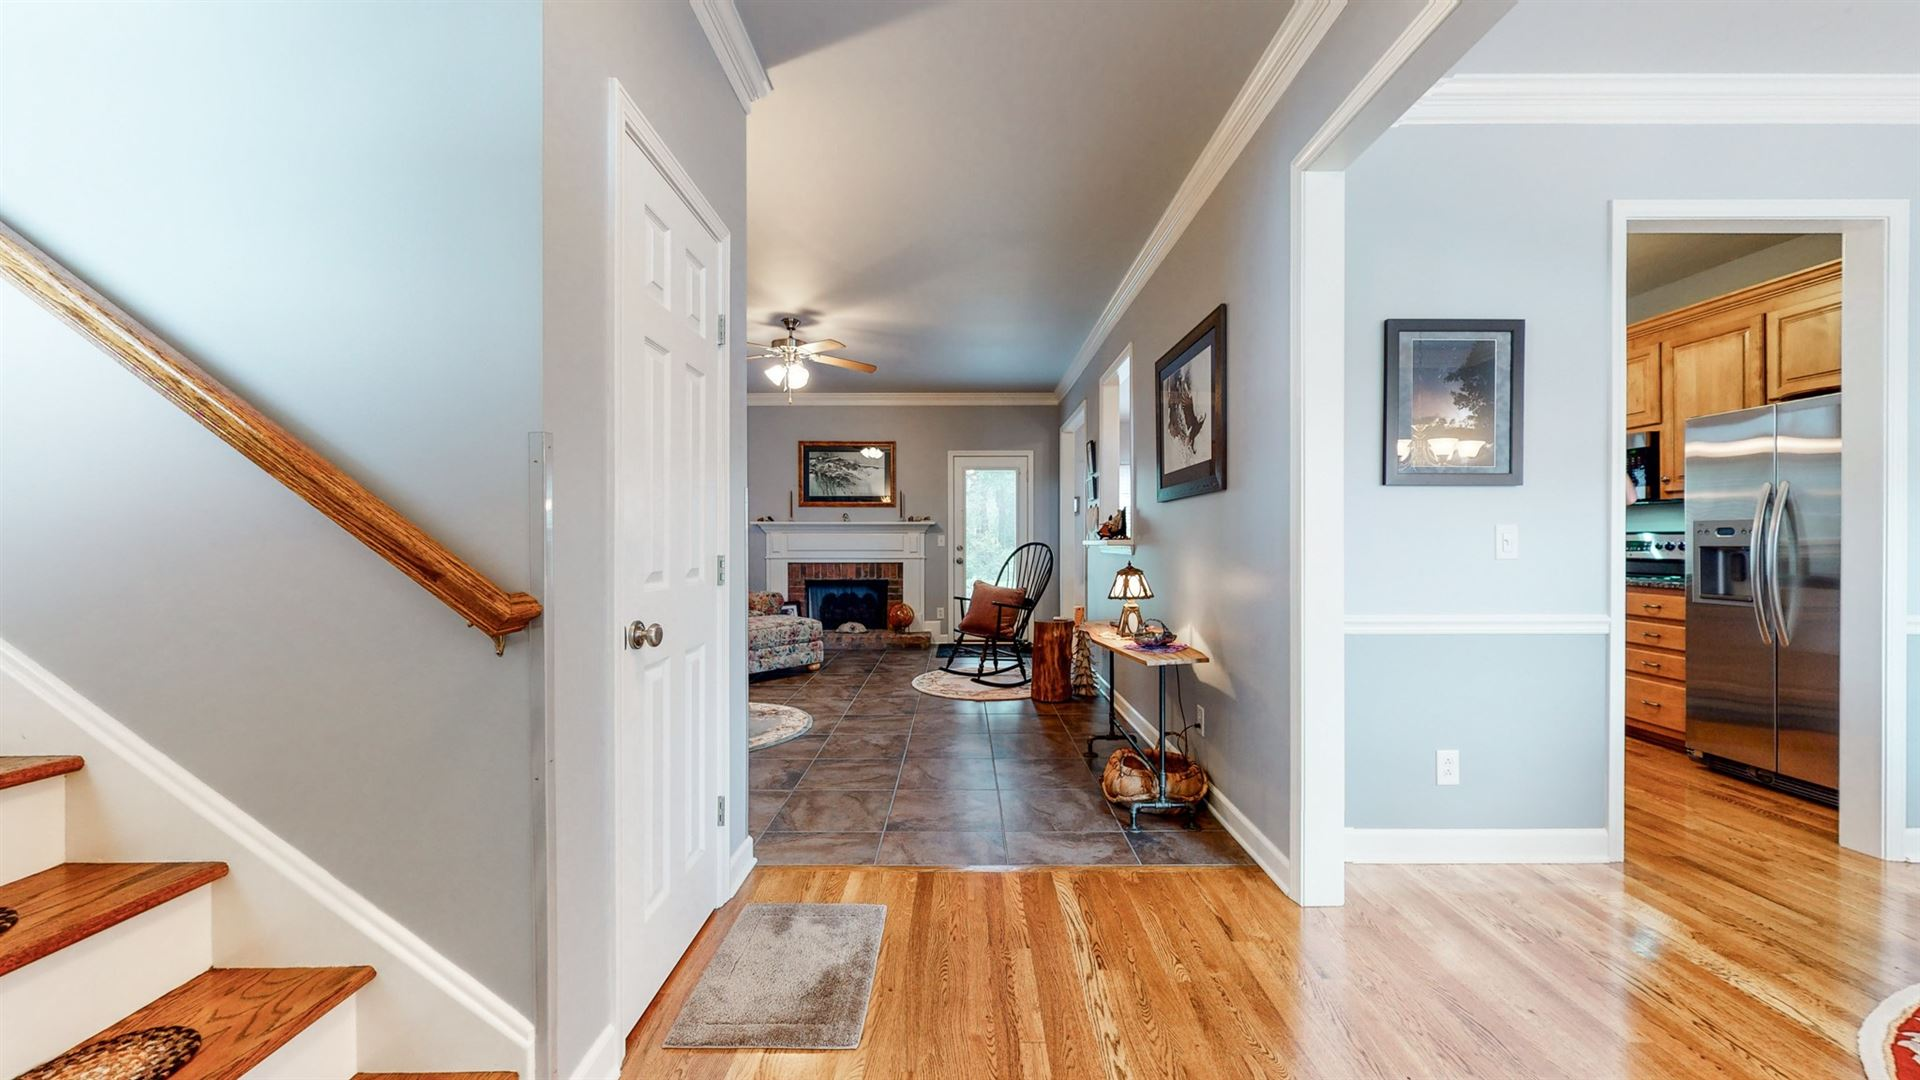 Photo of 1044 Belcor Dr, Spring Hill, TN 37174 (MLS # 2166253)